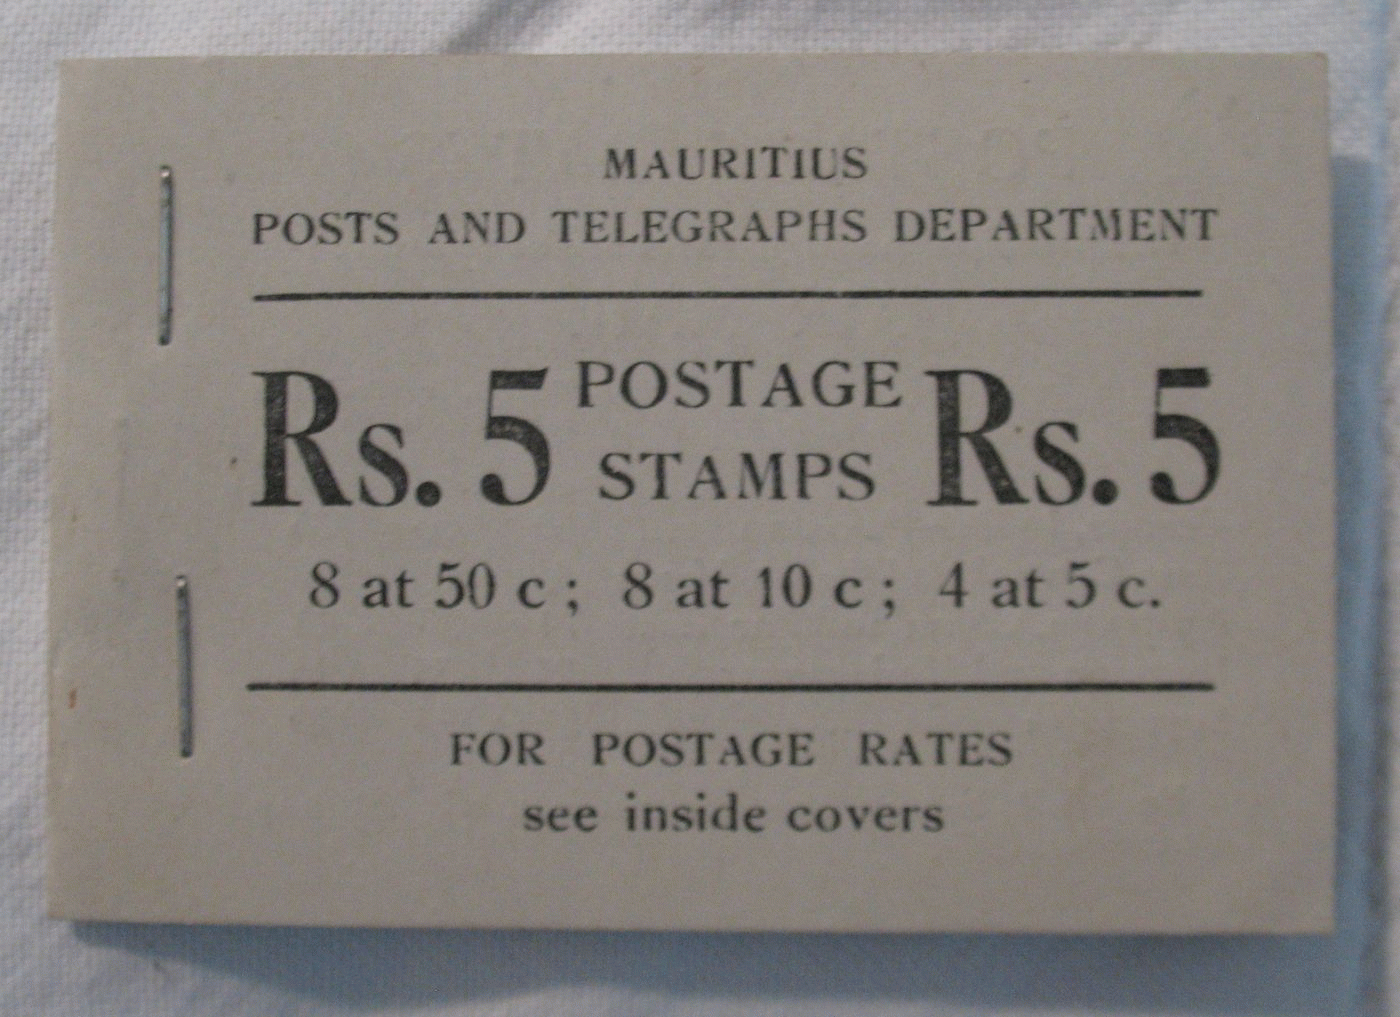 Department of Posts and Telegraphs. Postage stamps value 5 Rupees